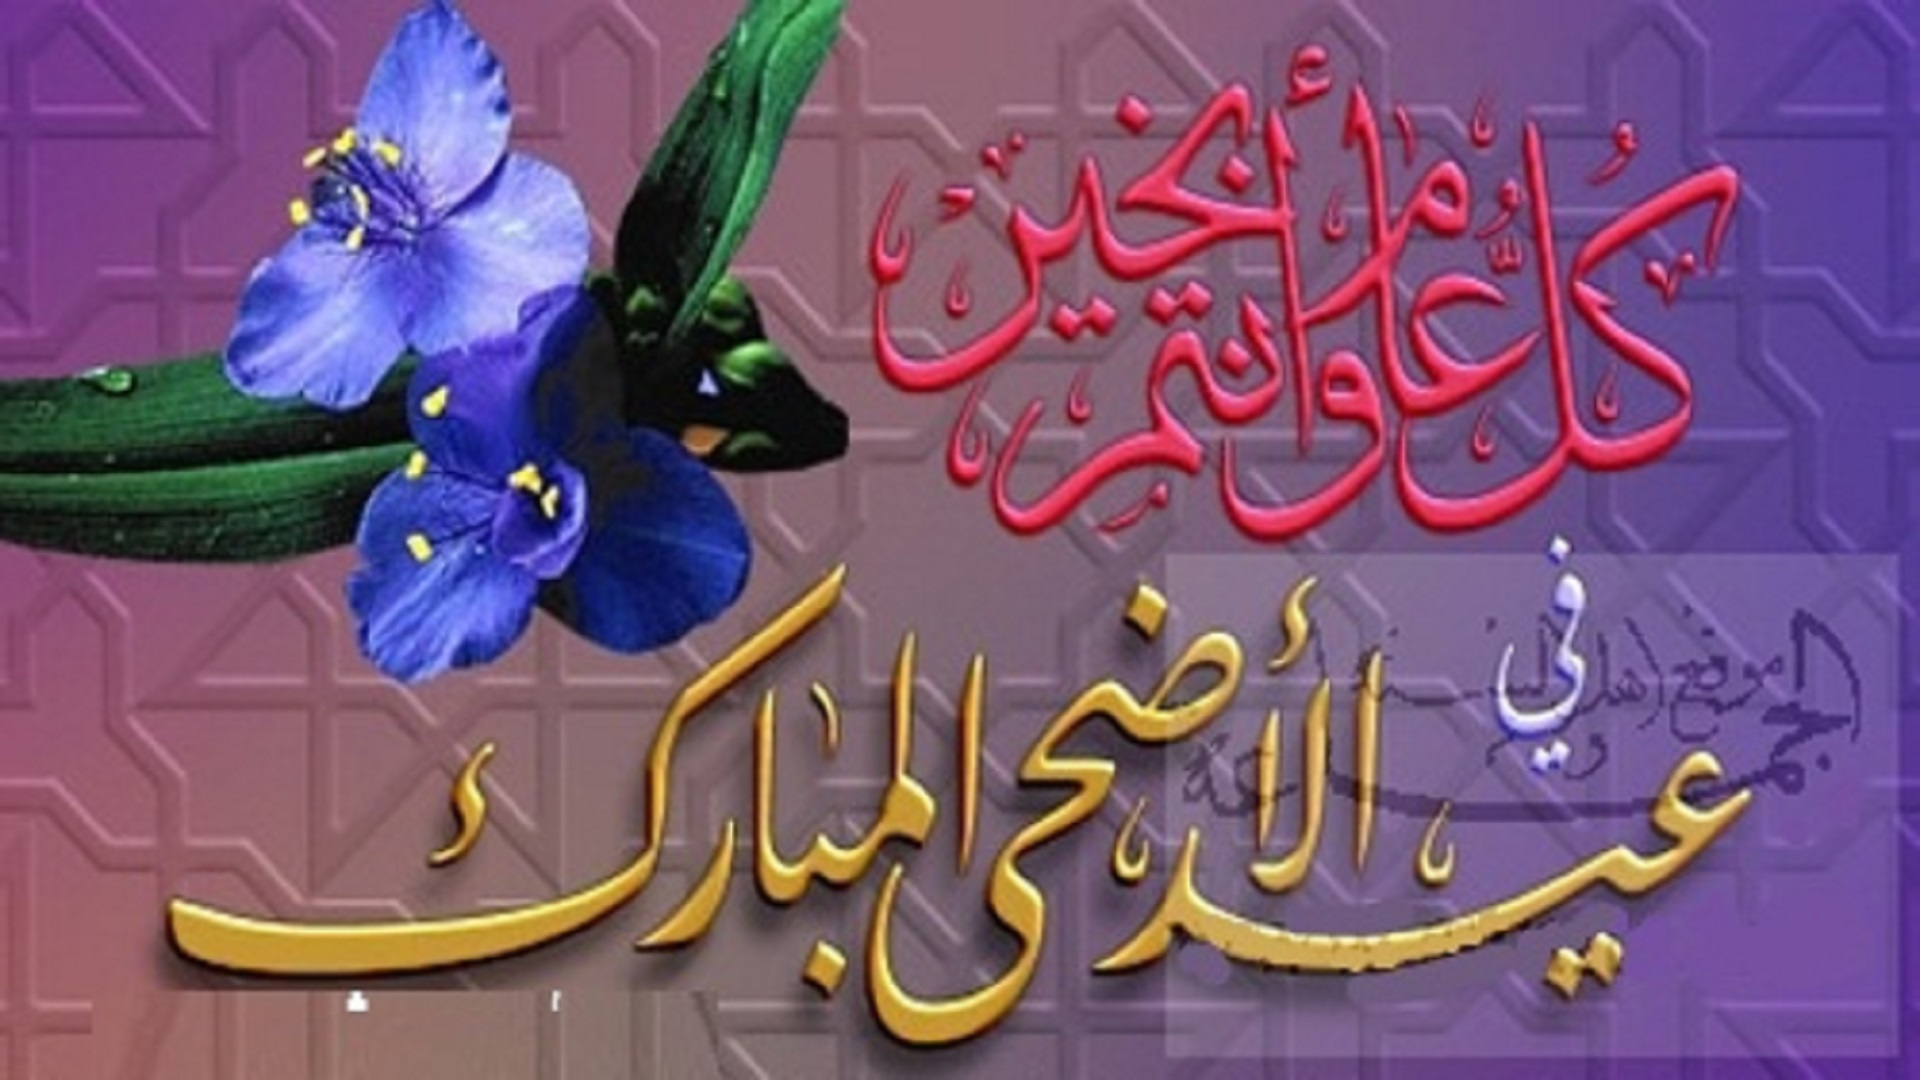 arabic eid ul adha wishes hd mobile desktop free images